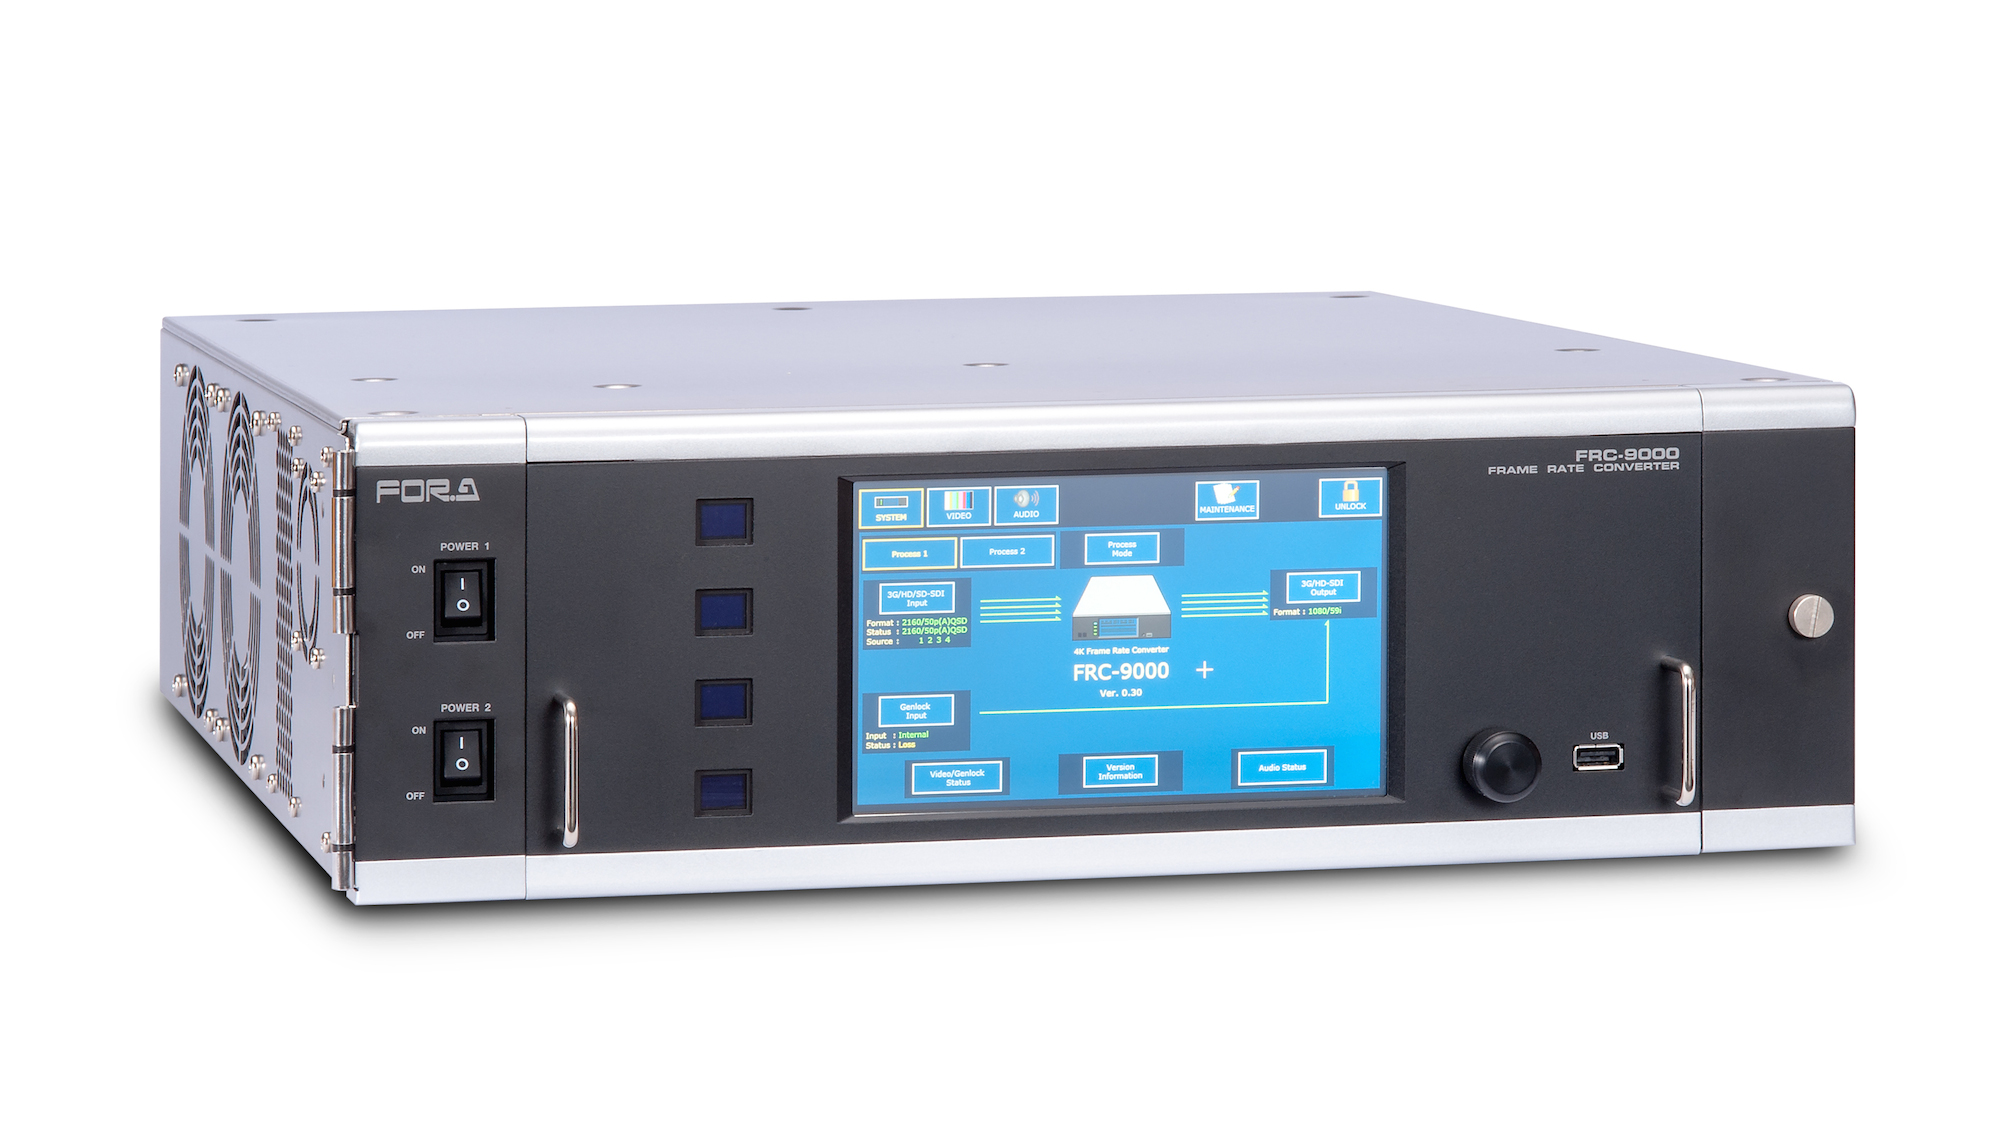 FRC-9000 - PRODUCTS - FOR-A